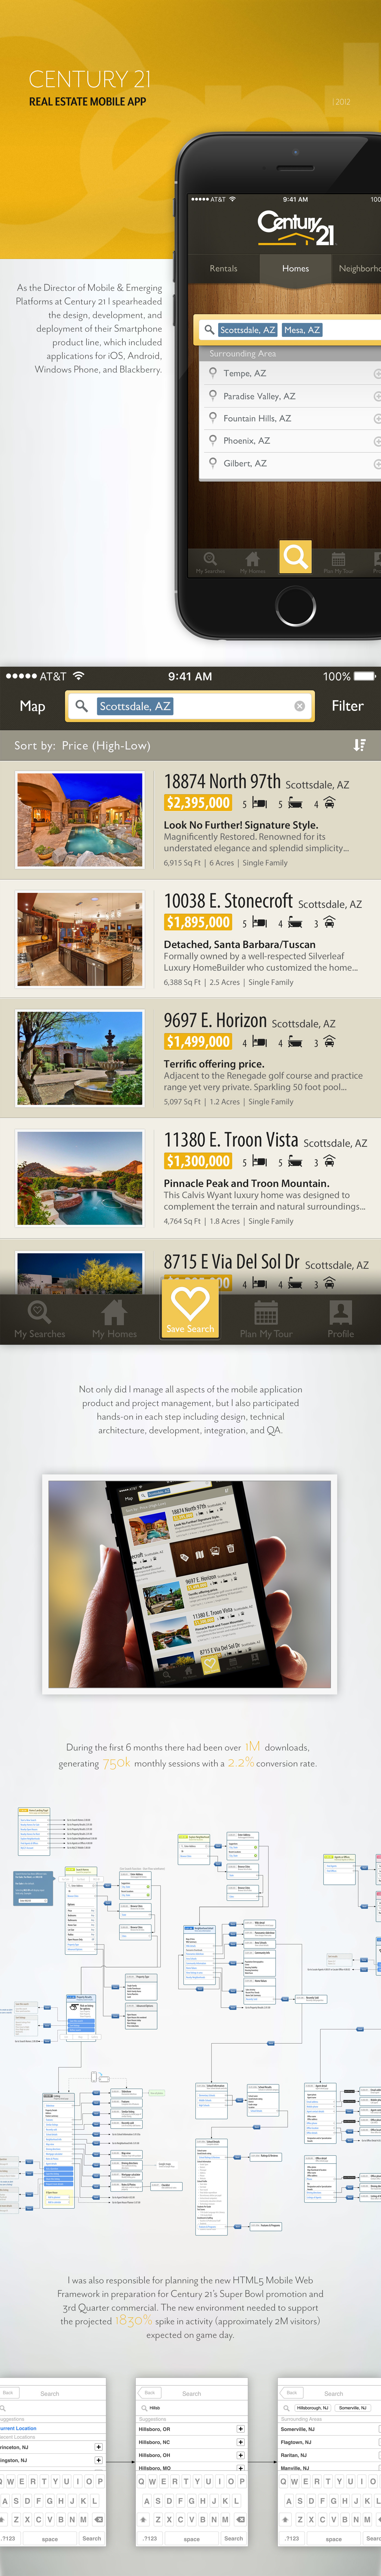 Century 21 Real Estate App